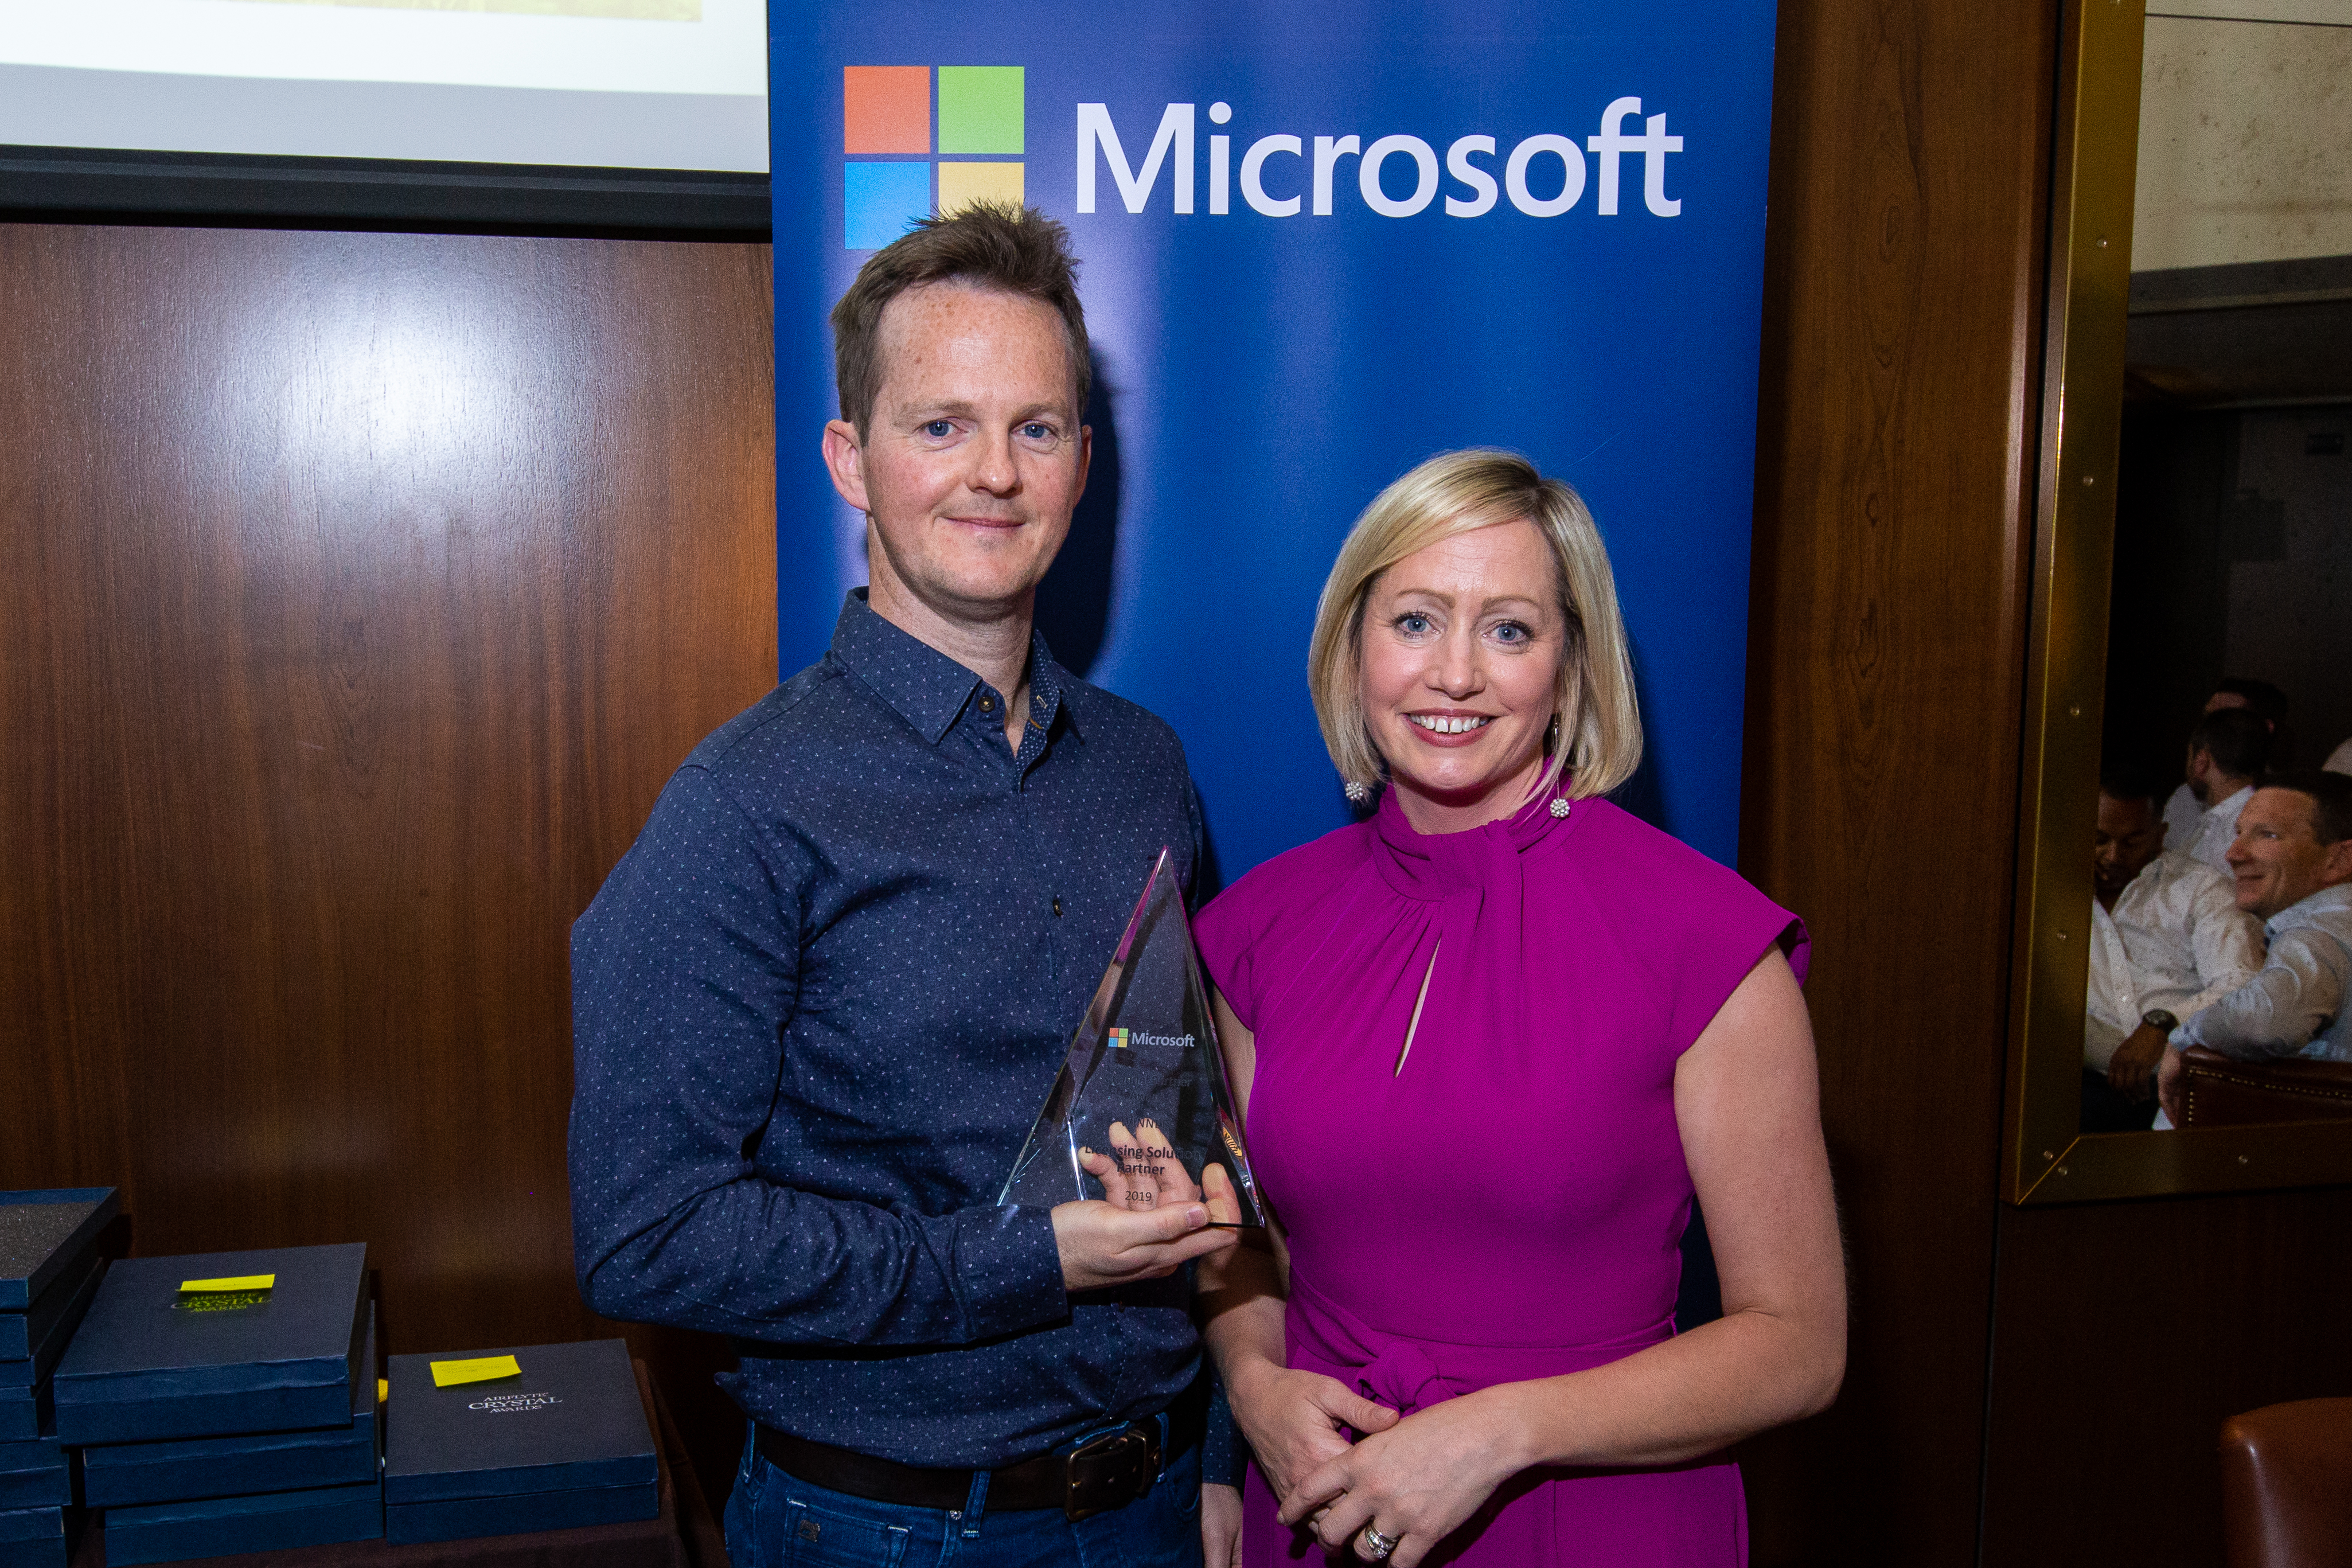 Donagh Walsh on behalf of SoftwareOne and Aisling Curtis from Microsoft